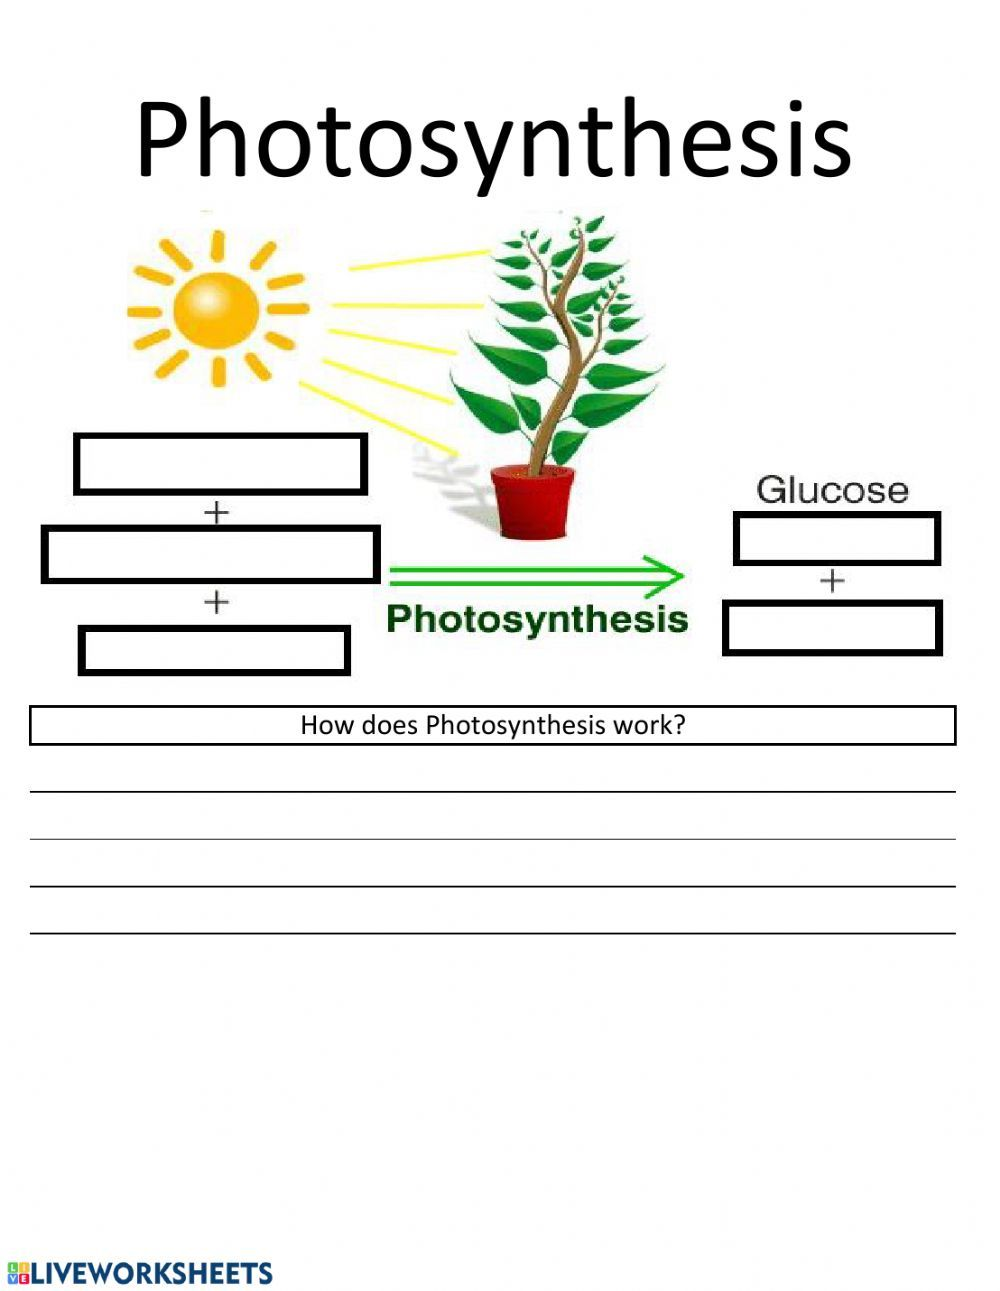 Photosynthesis Worksheet In 2020 Photosynthesis Worksheet Photosynthesis Science Worksheets